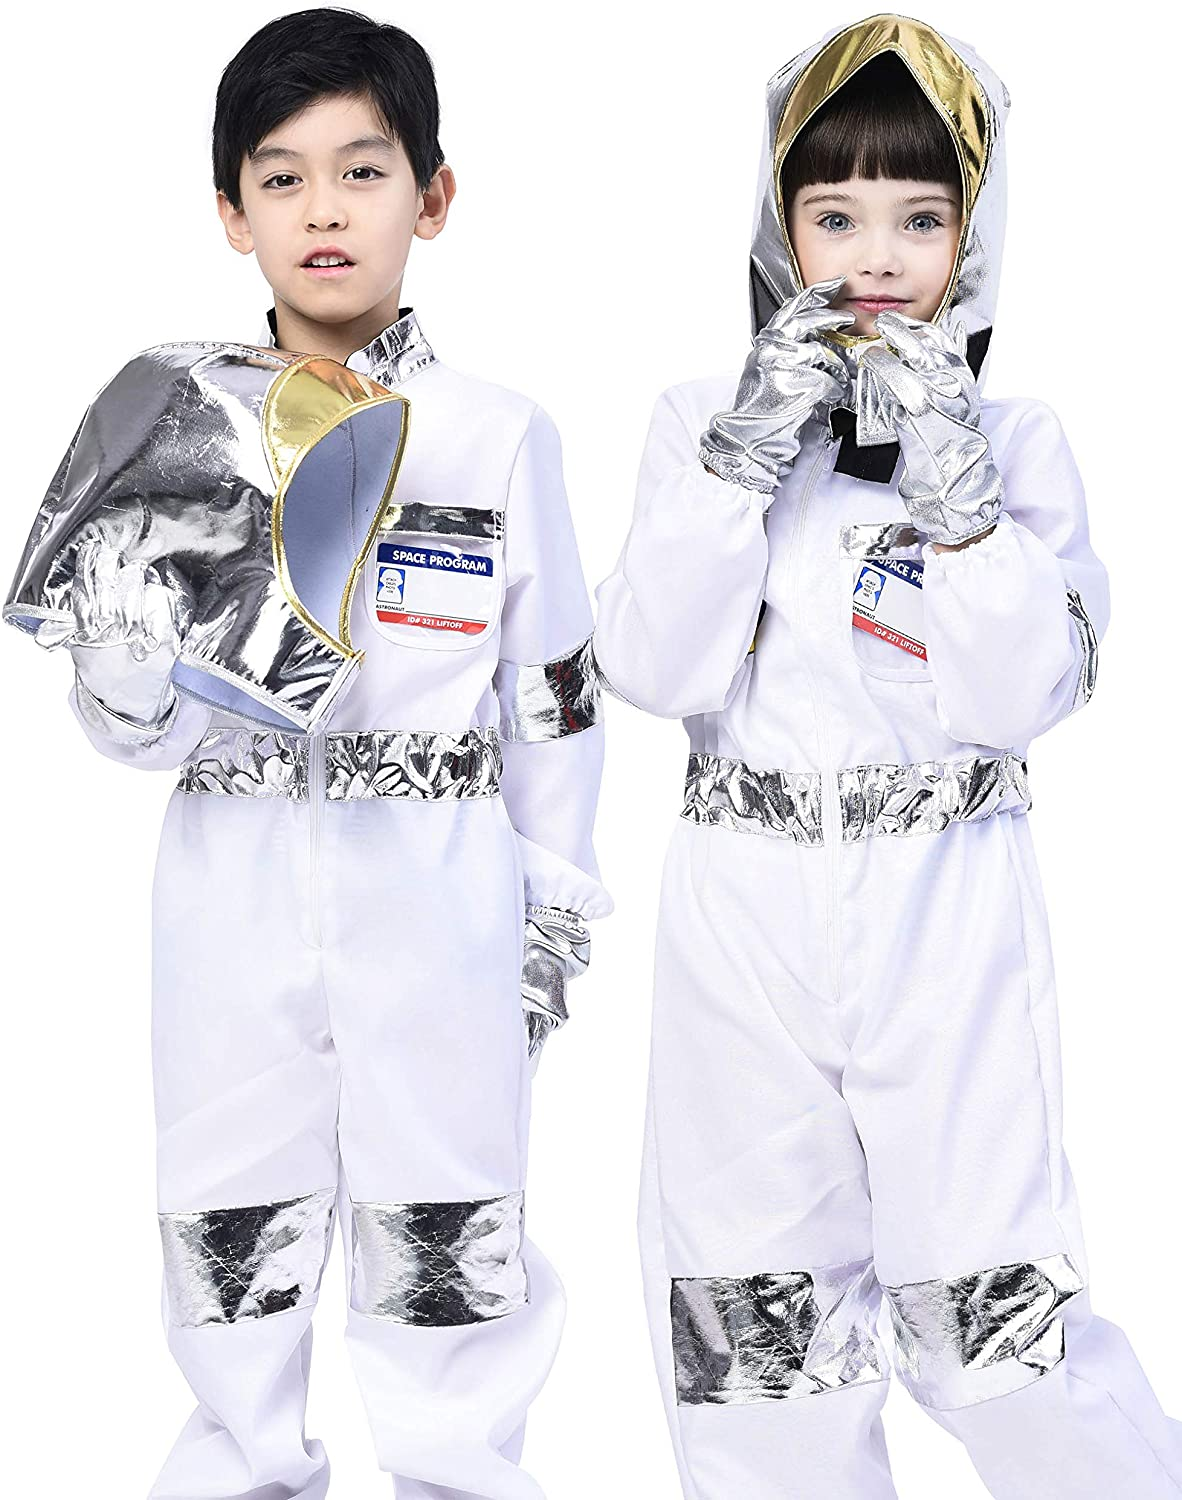 IKALI Kids Astronaut Costume,Classic Space Coats Pretend Play Outfit with Accessories (5pcs ) 4-6Y